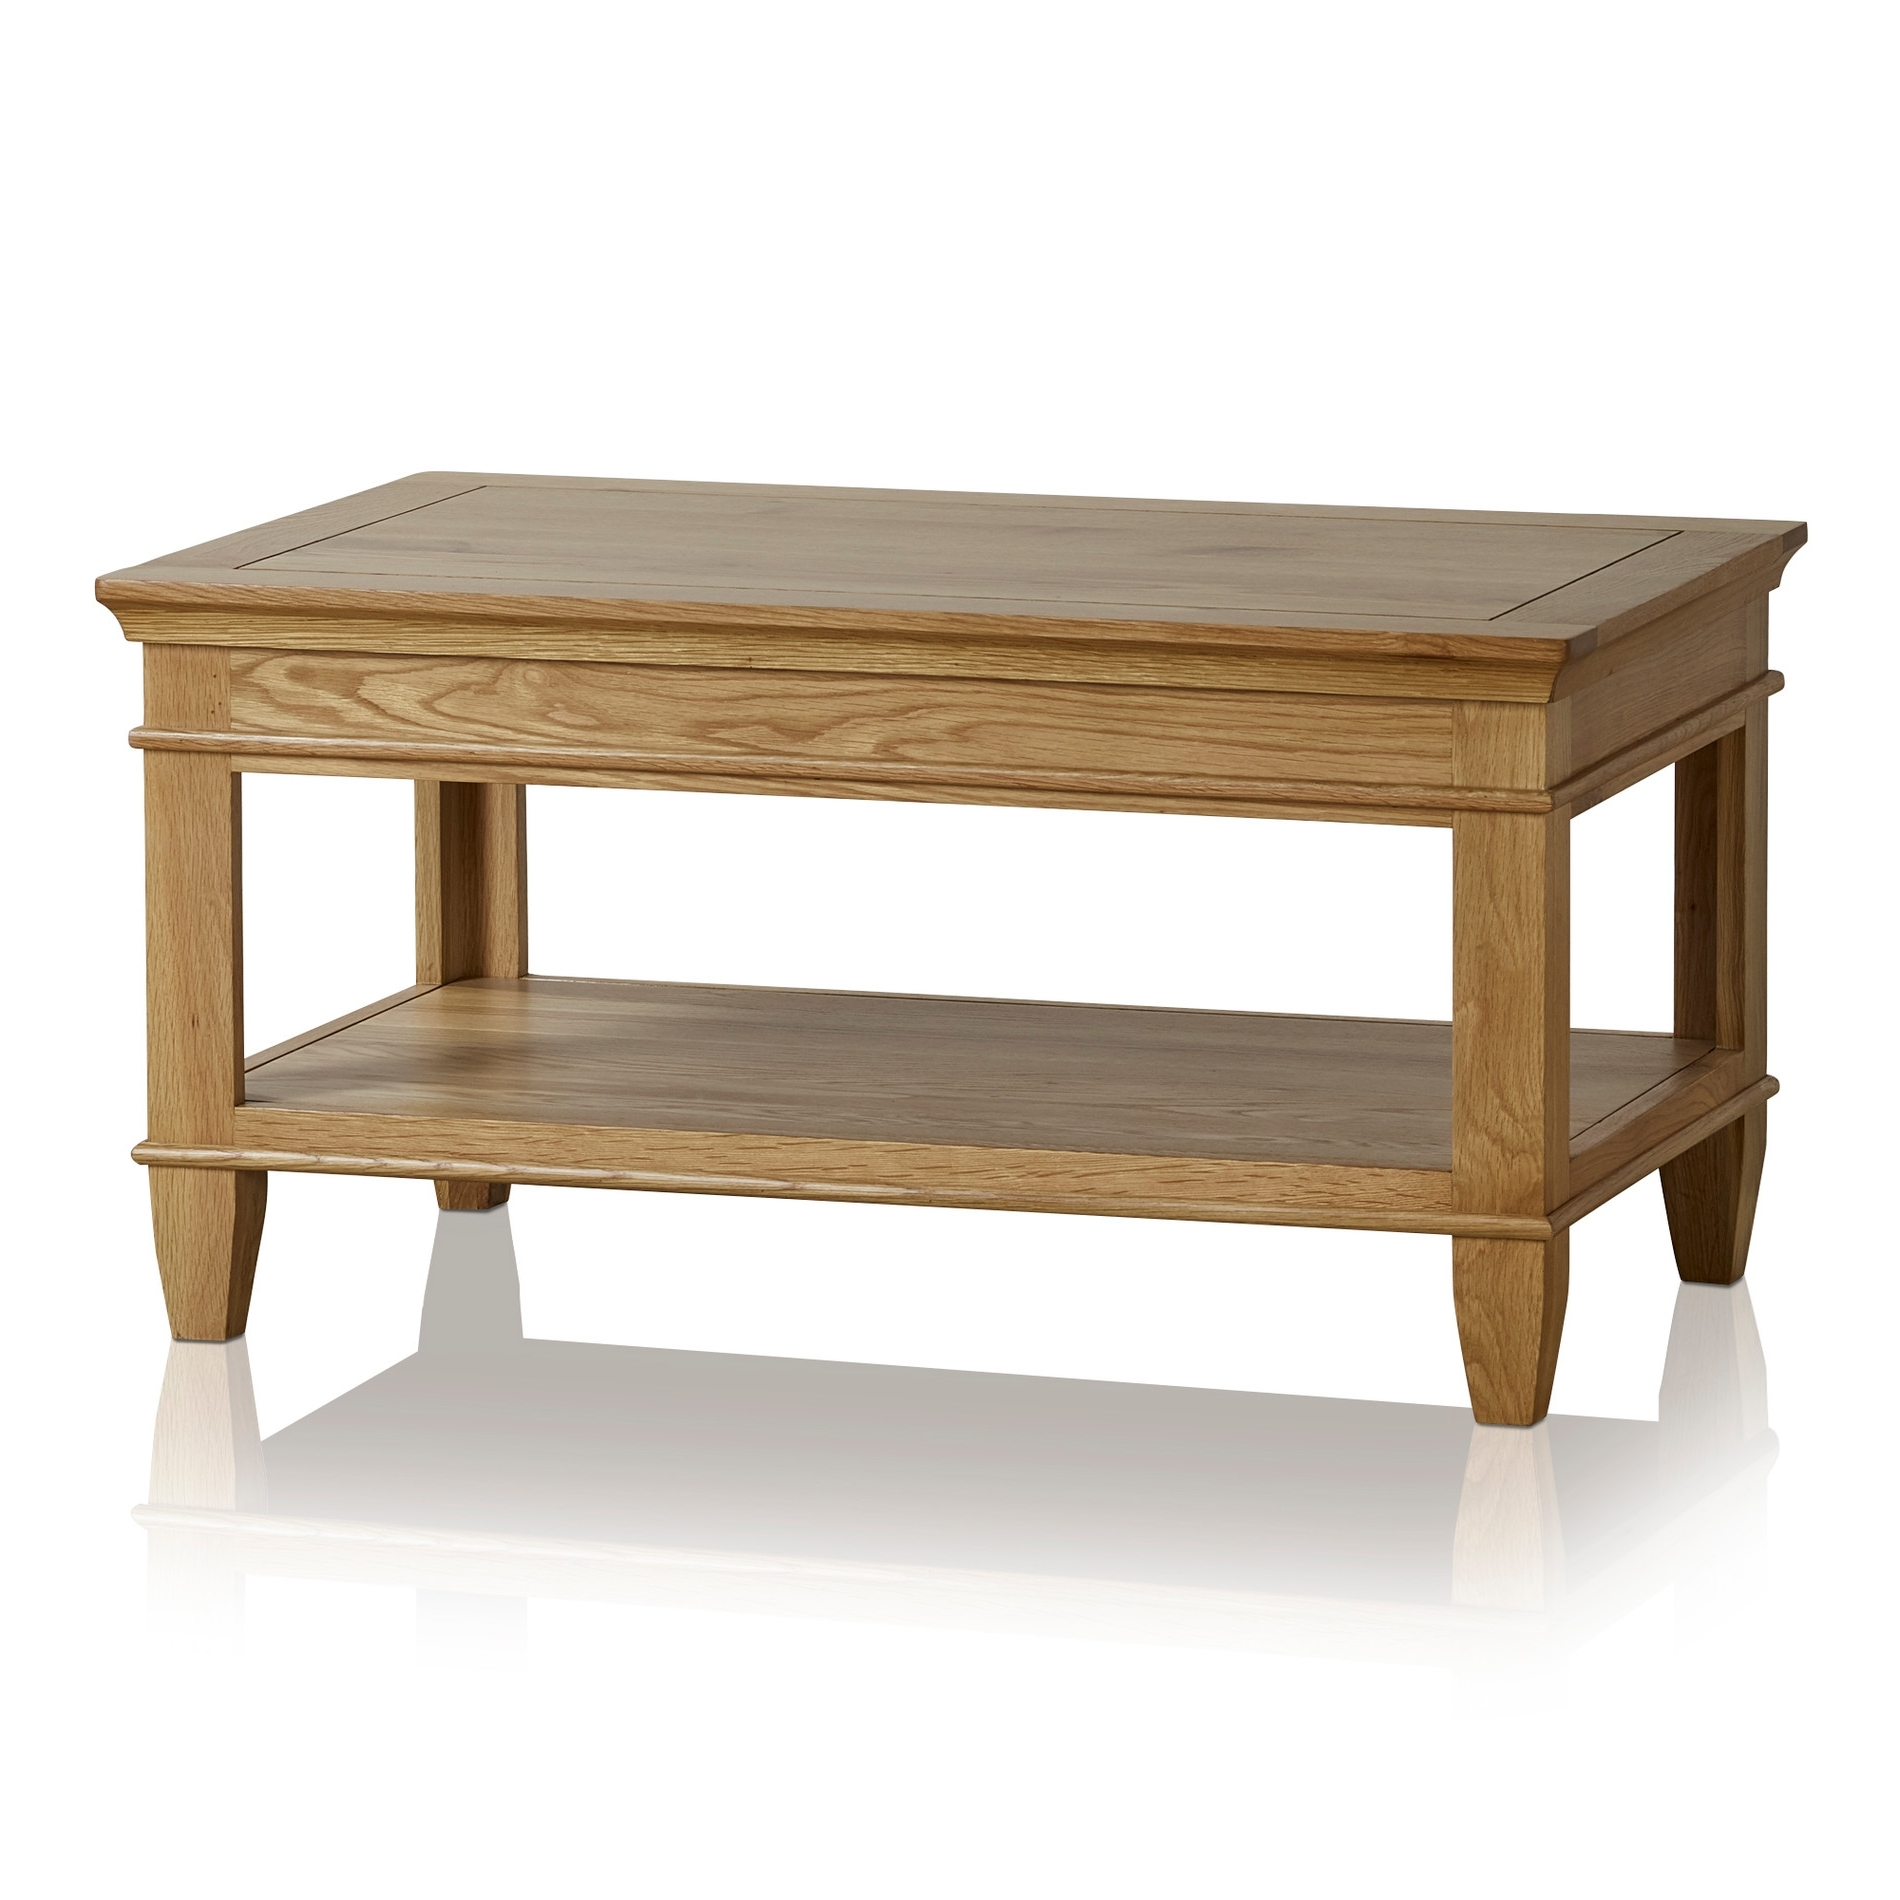 Oak Furniture Land In Fashionable Natural 2 Drawer Shutter Coffee Tables (Gallery 17 of 20)